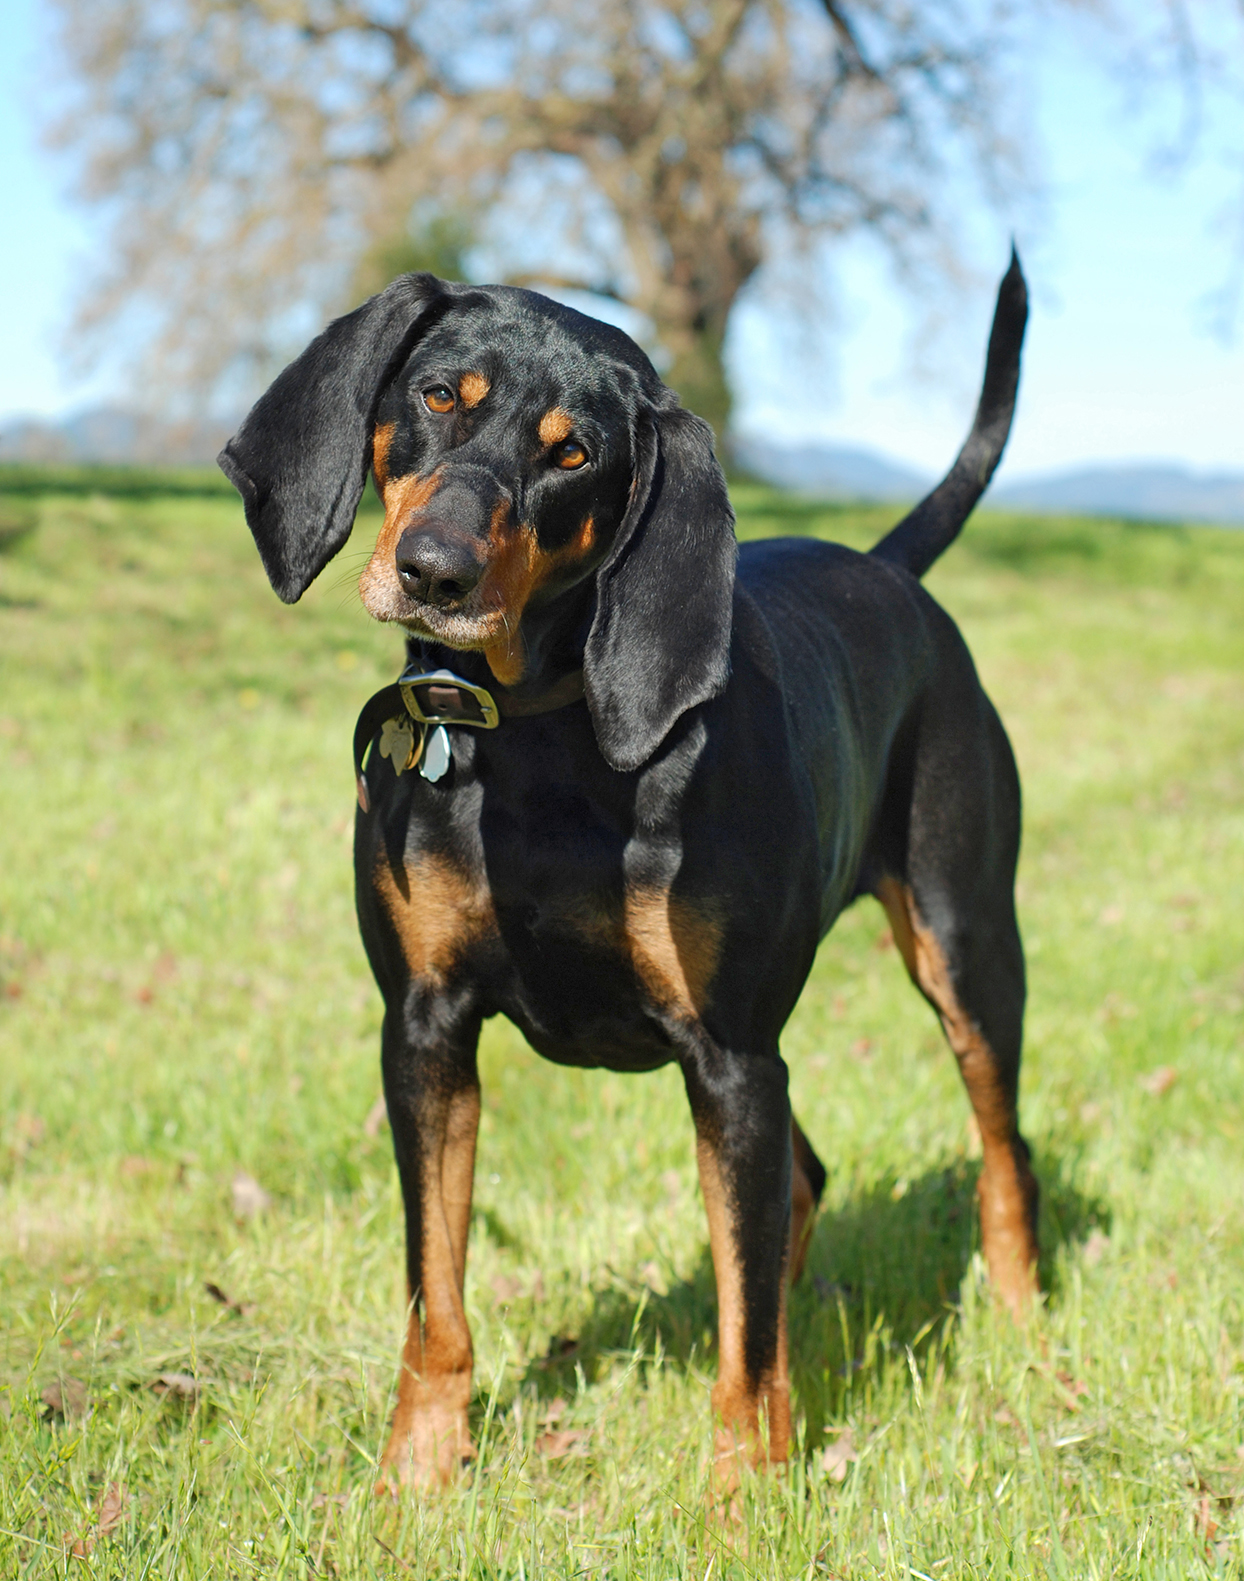 black and tan coonhound standing in grass head tilted